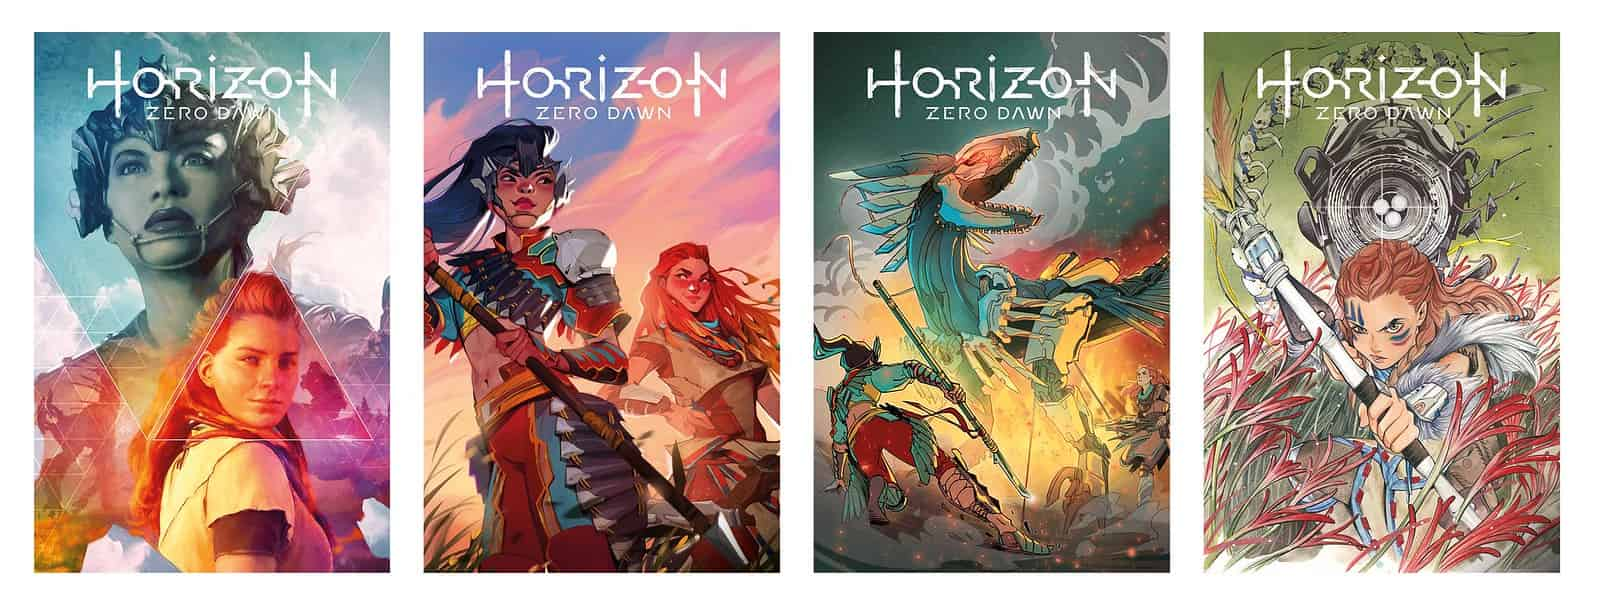 new-horizon-merchandise-revealed-including-clothes-comics-and-a-board-game-2